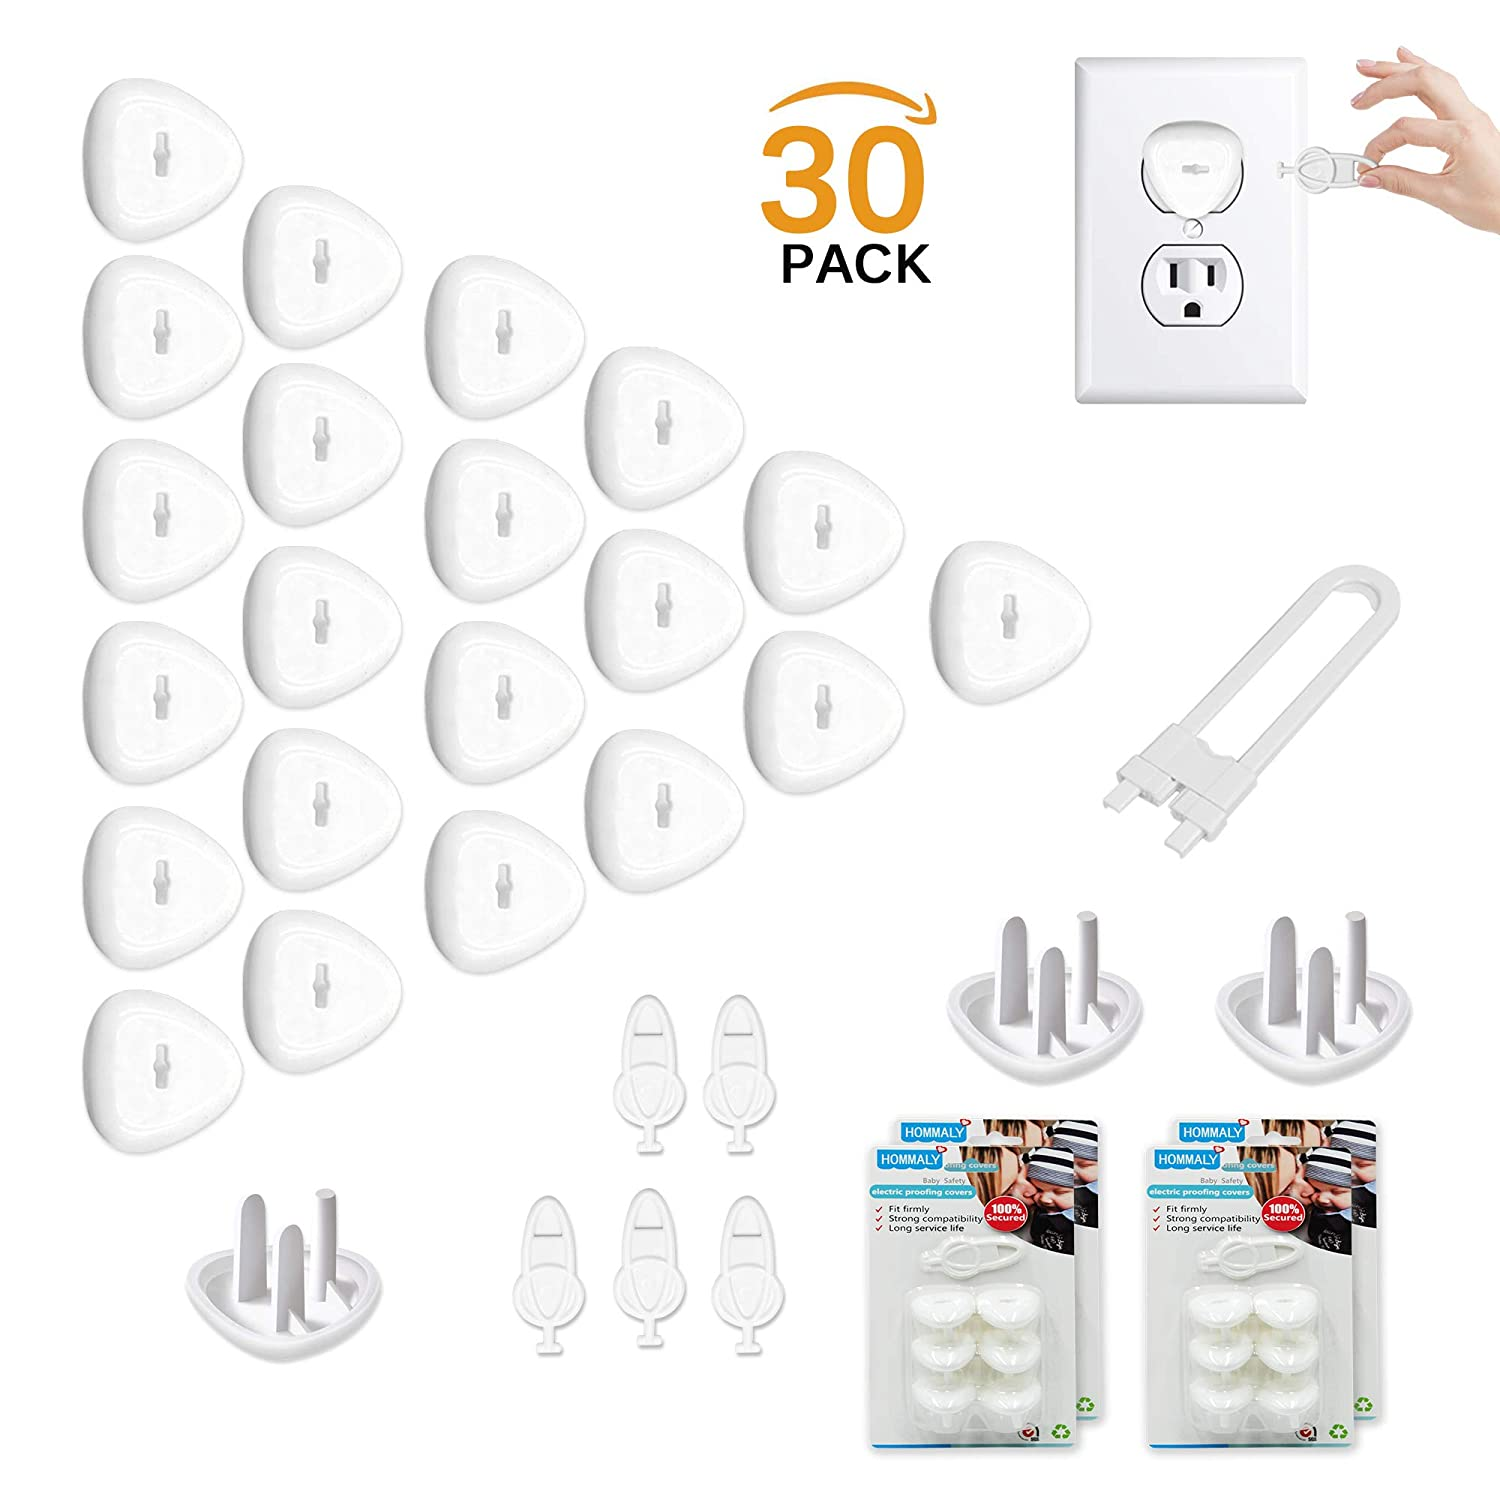 Electric Outlet Plugs Covers Baby Proofing(24 Plug + 5 Keys),Baby Safety ElectricalProtector Caps Kit for Toddlers Child BDD